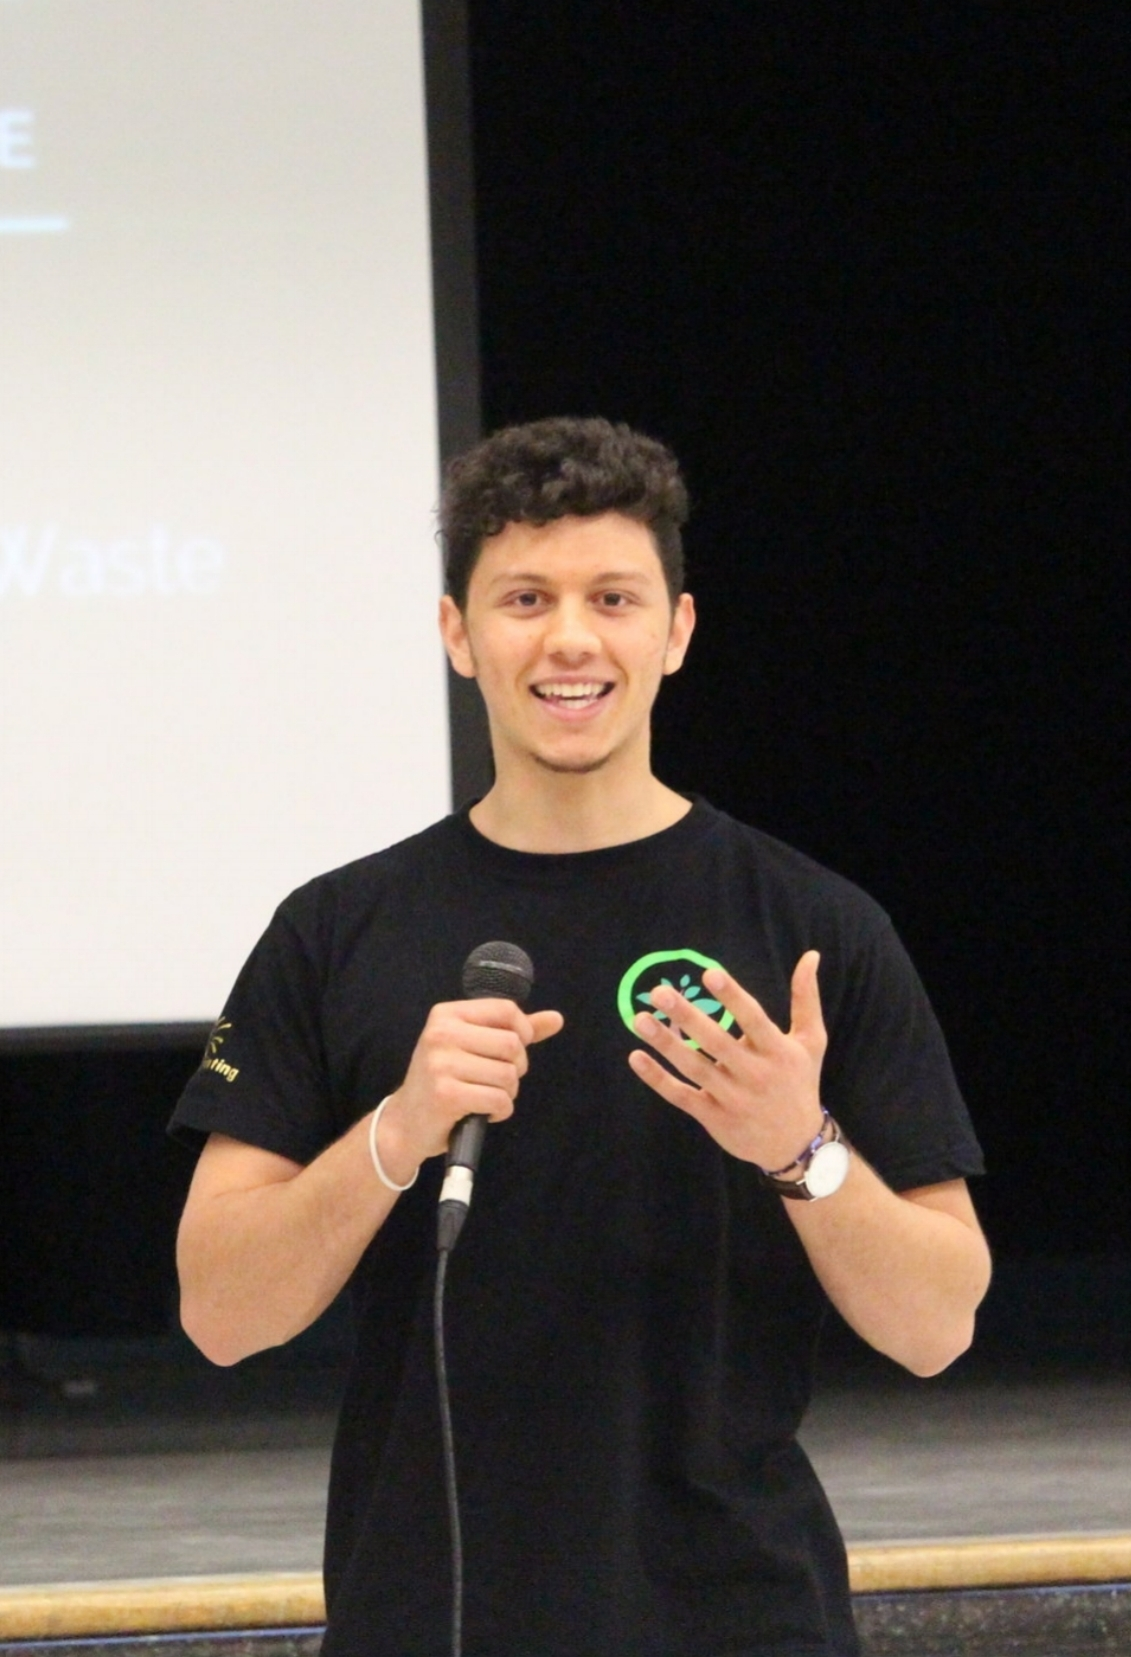 SAM DEMMA - Canadas Top 25 under 25 Environmentalist& Co-Founder of PickWaste